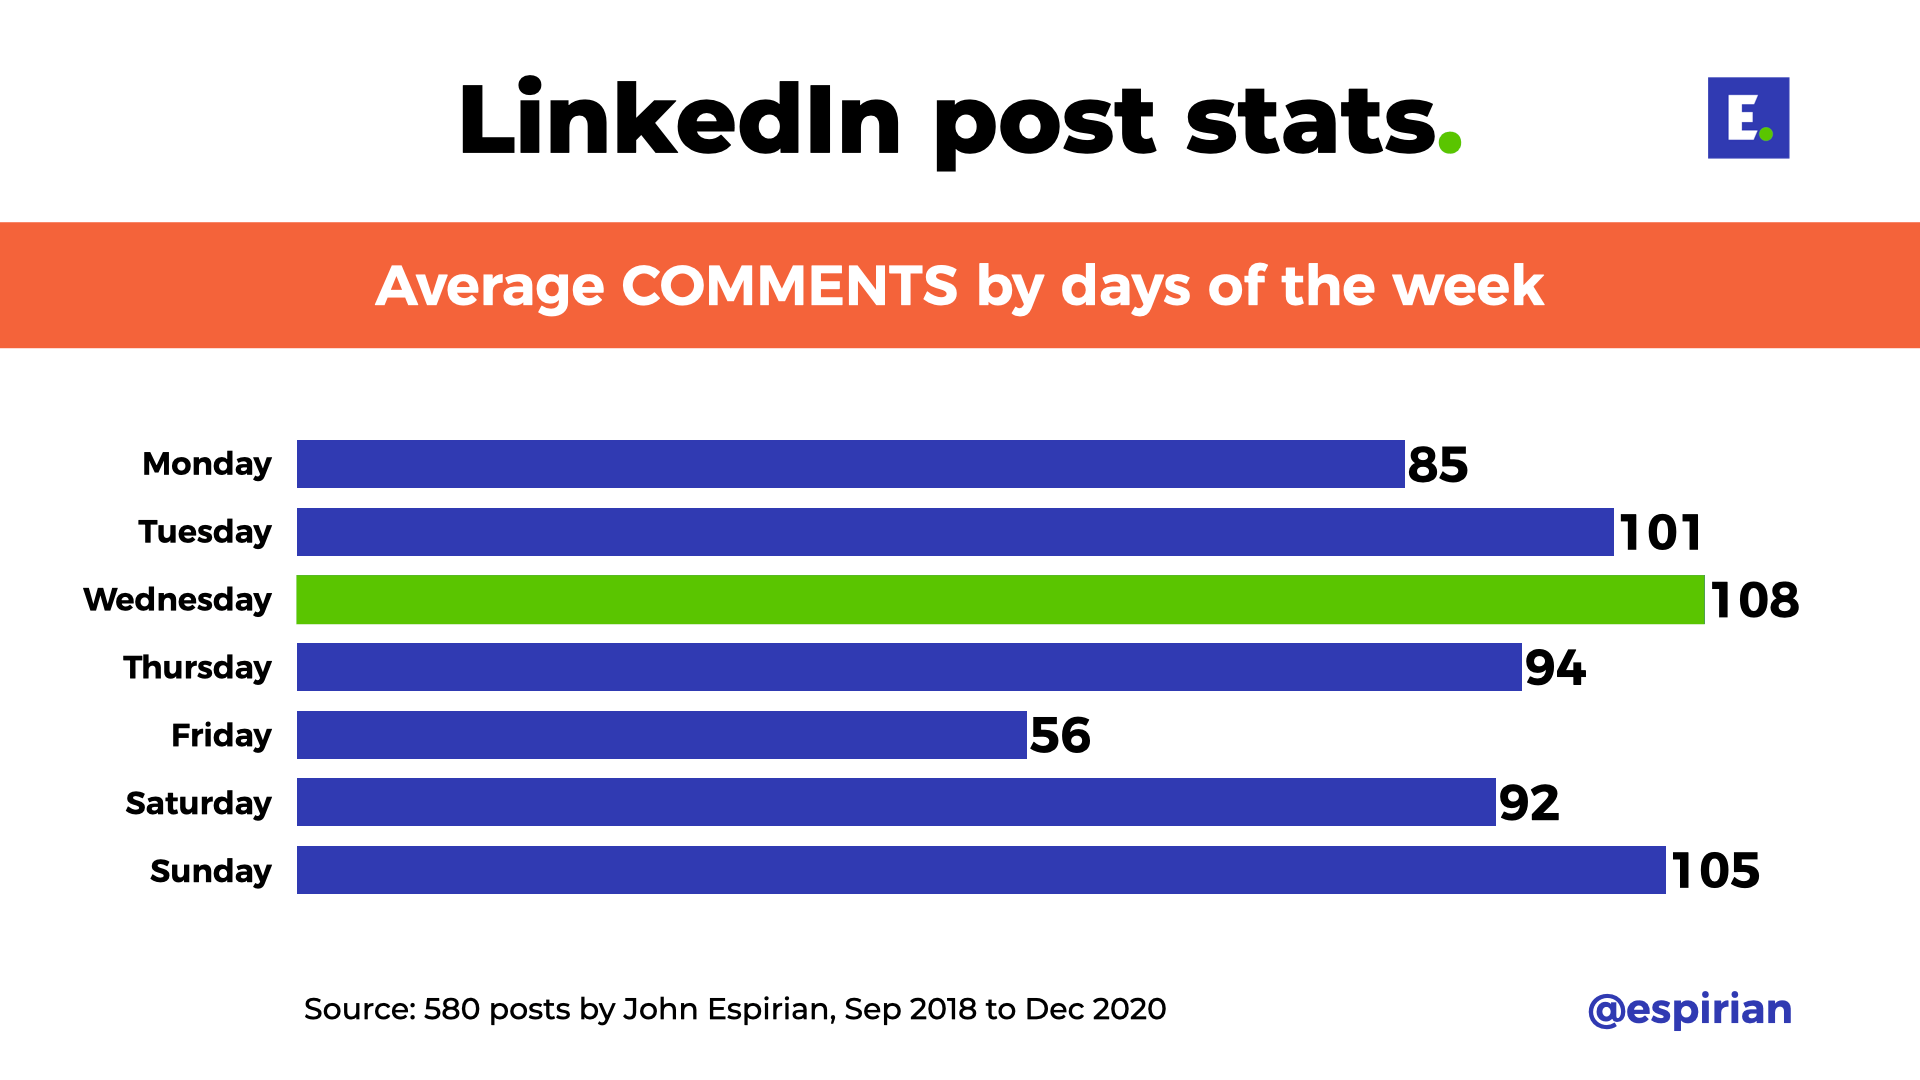 Average post comments by days of the week